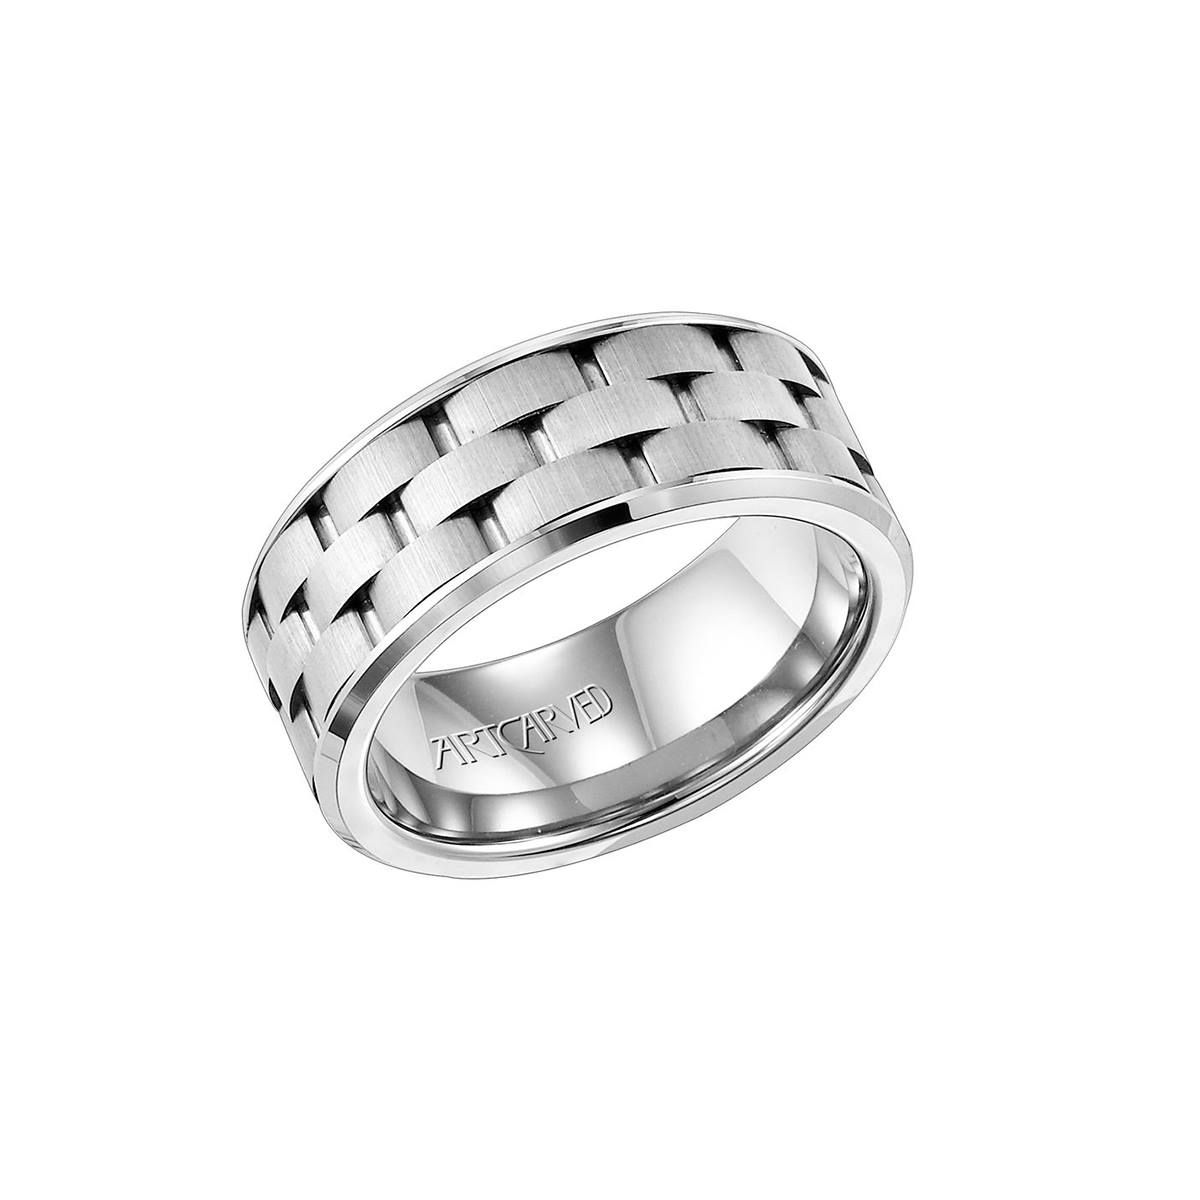 ArtCarved Engagement Rings and wedding band Make sure your man